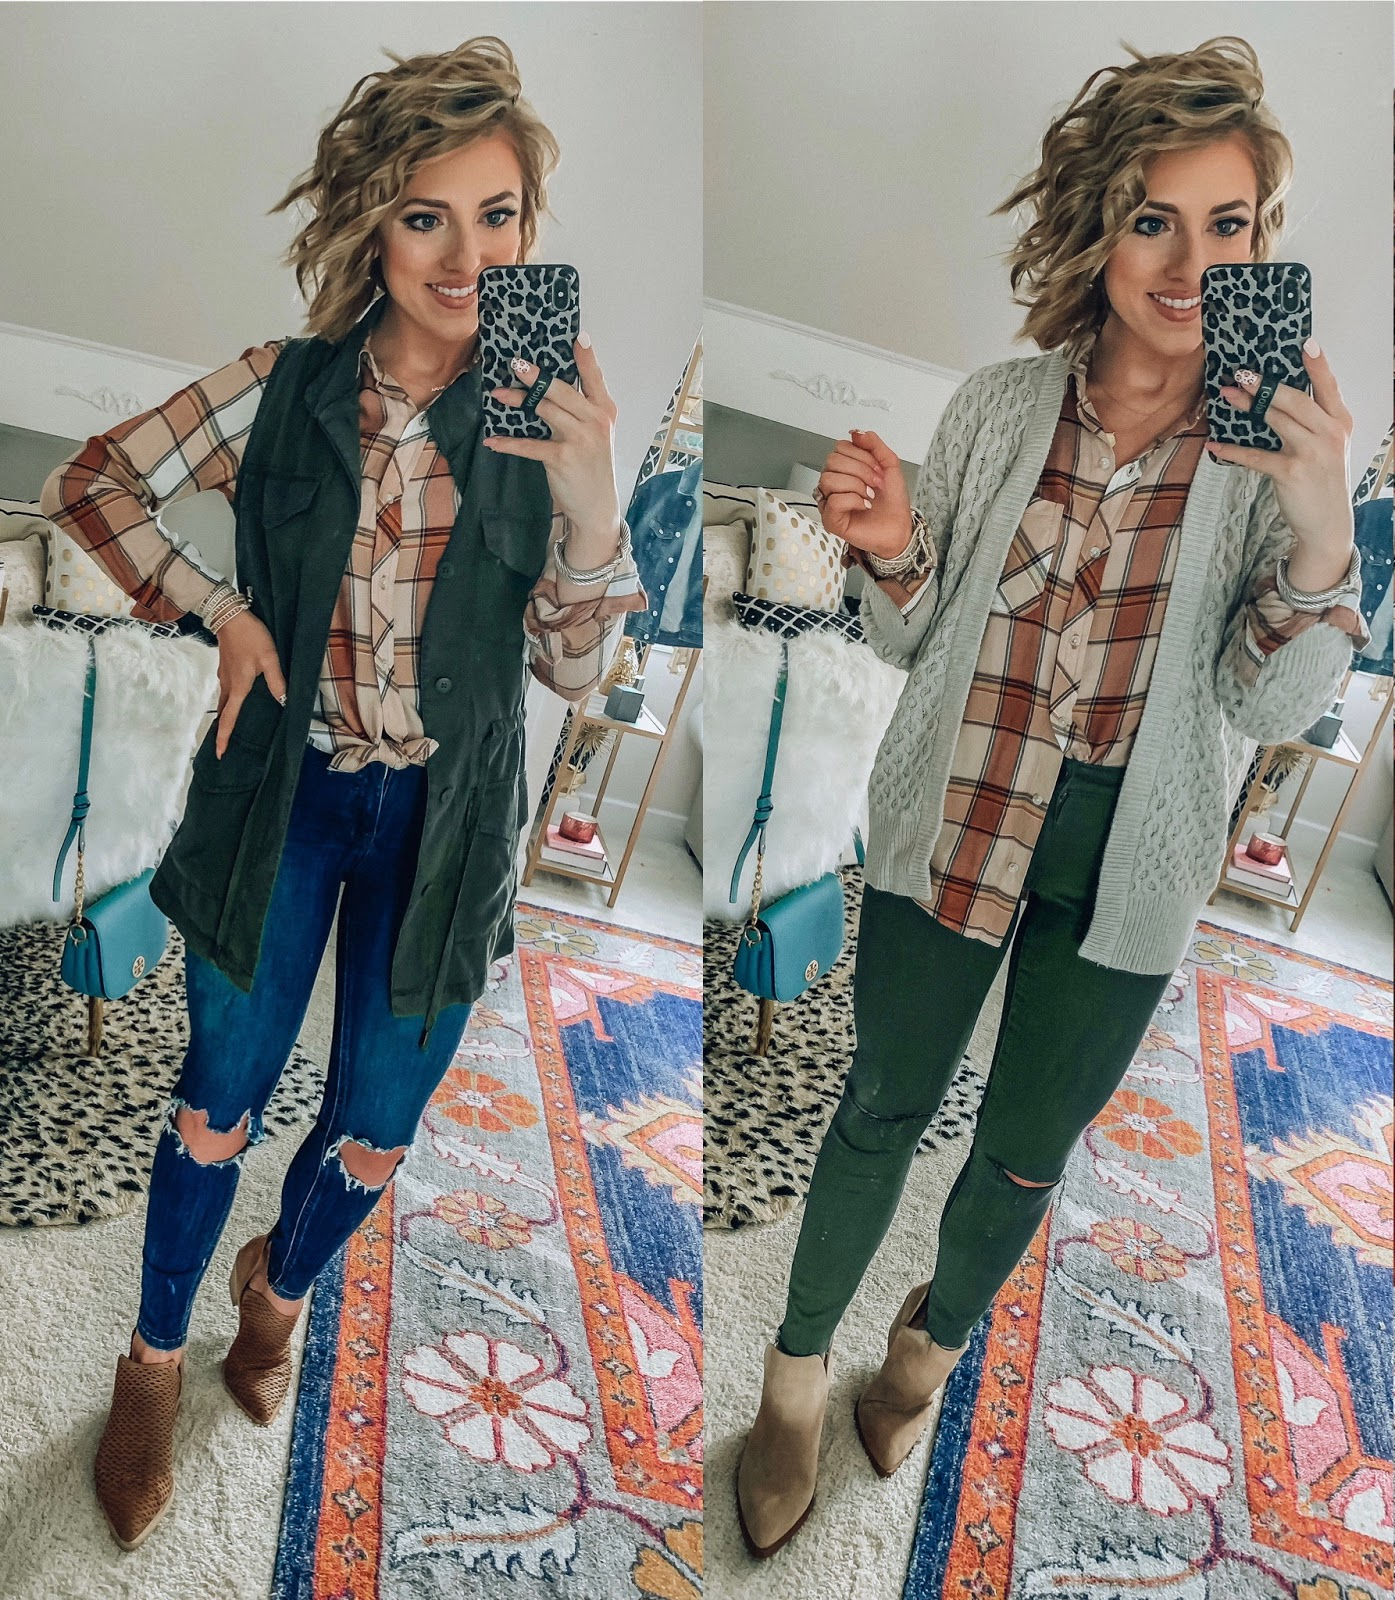 Target Fall Finds: Part 2 - Under $20 Plaid Top styled two ways - Something Delightful Blog #fallfashion #leopard #pajamas #targetstyle #targetfallfinds